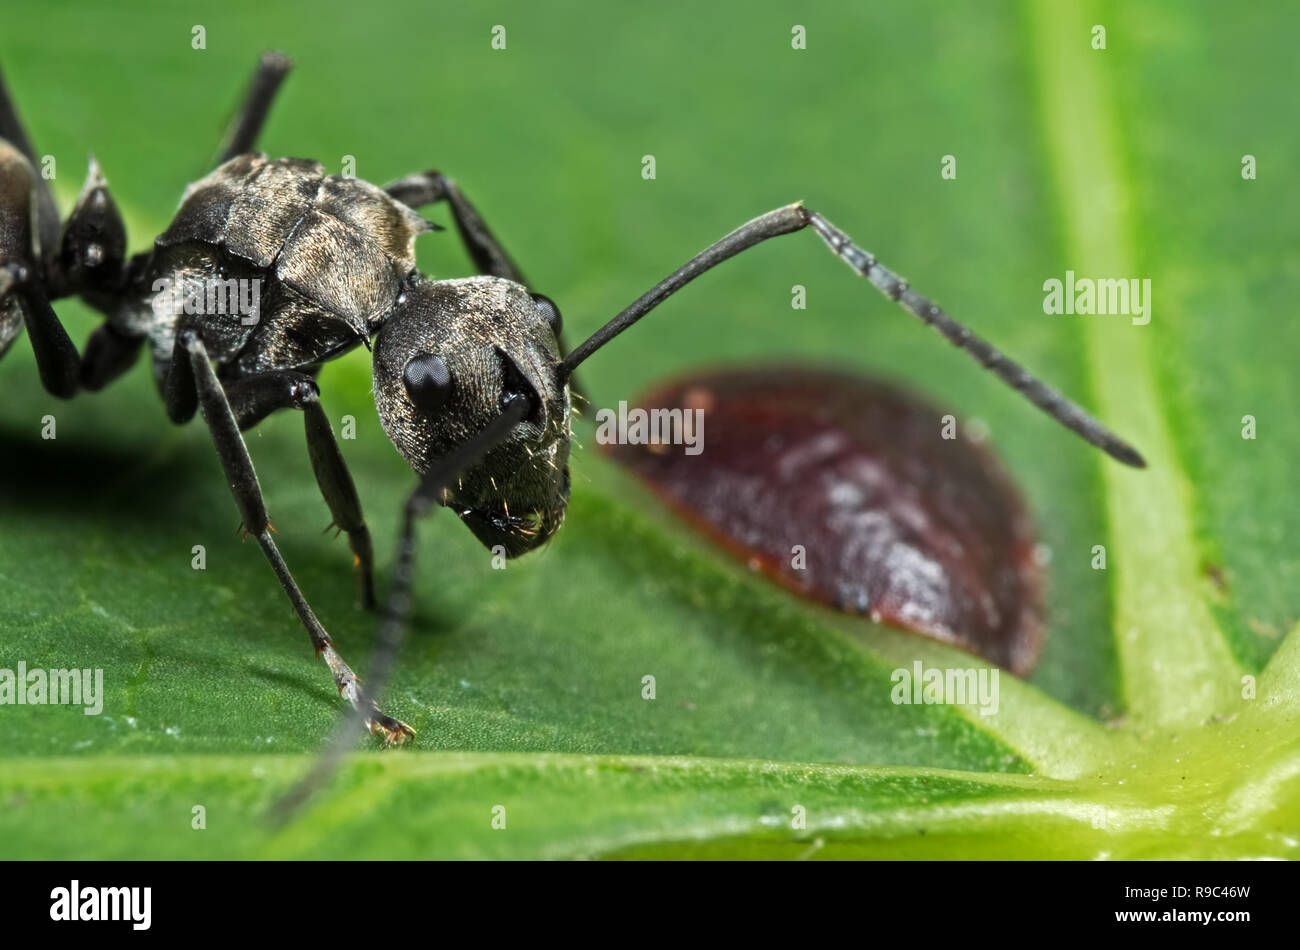 Macro Photography of Polyrhachis Dives Ant with Scale Insect on Green Leaf - Stock Image